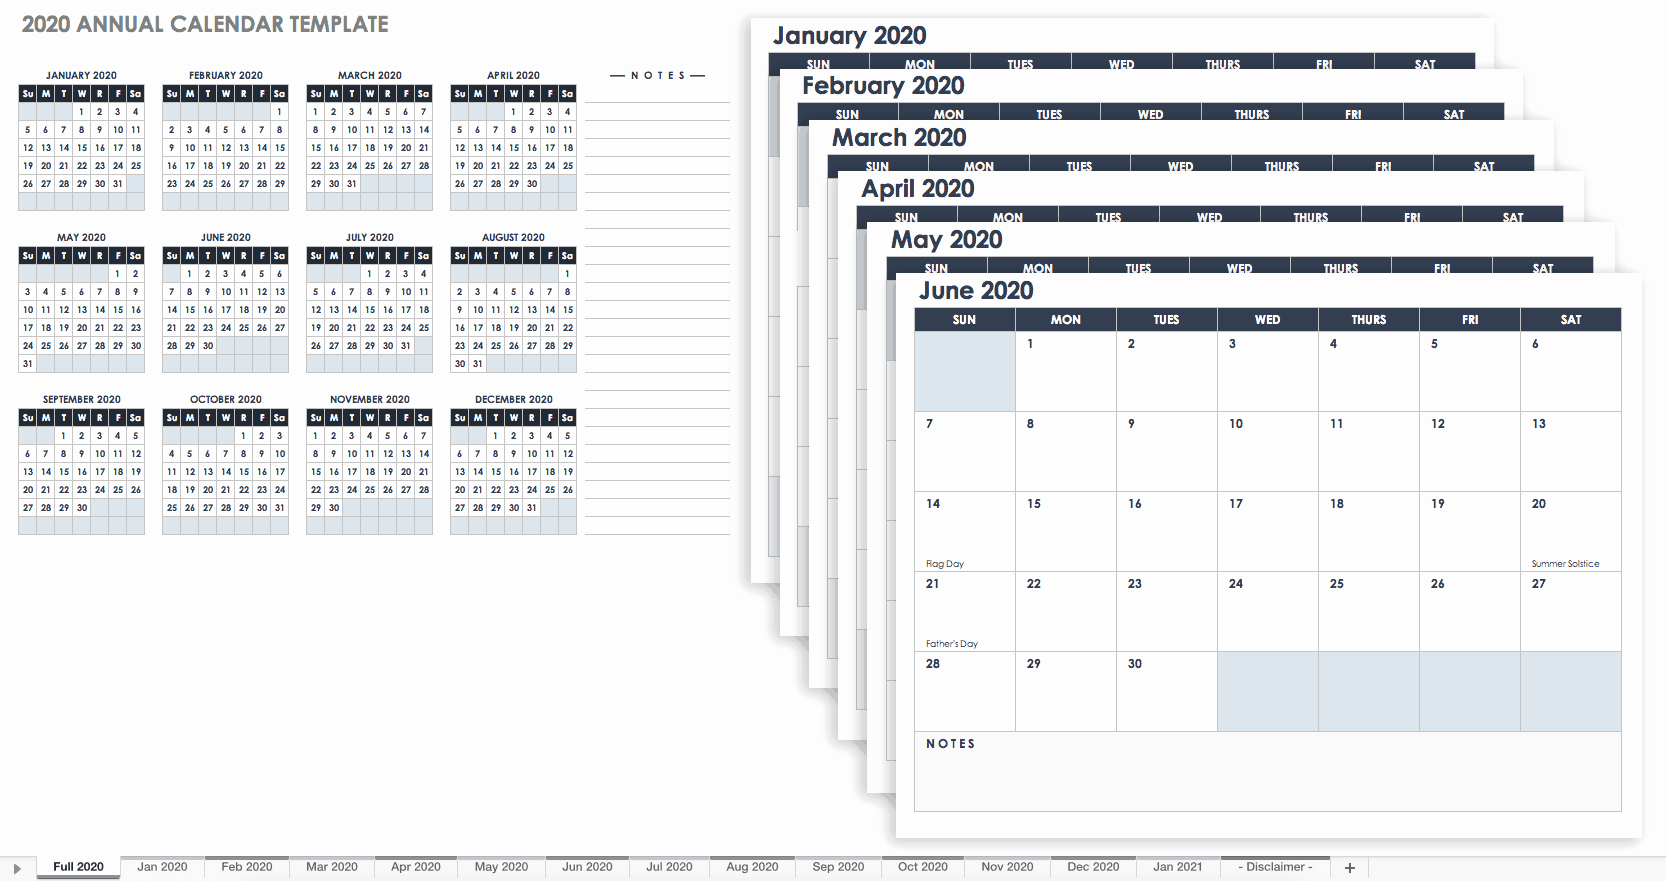 Excel Calendar 2019 Template Inspirational Free Printable Excel Calendar Templates for 2019 &